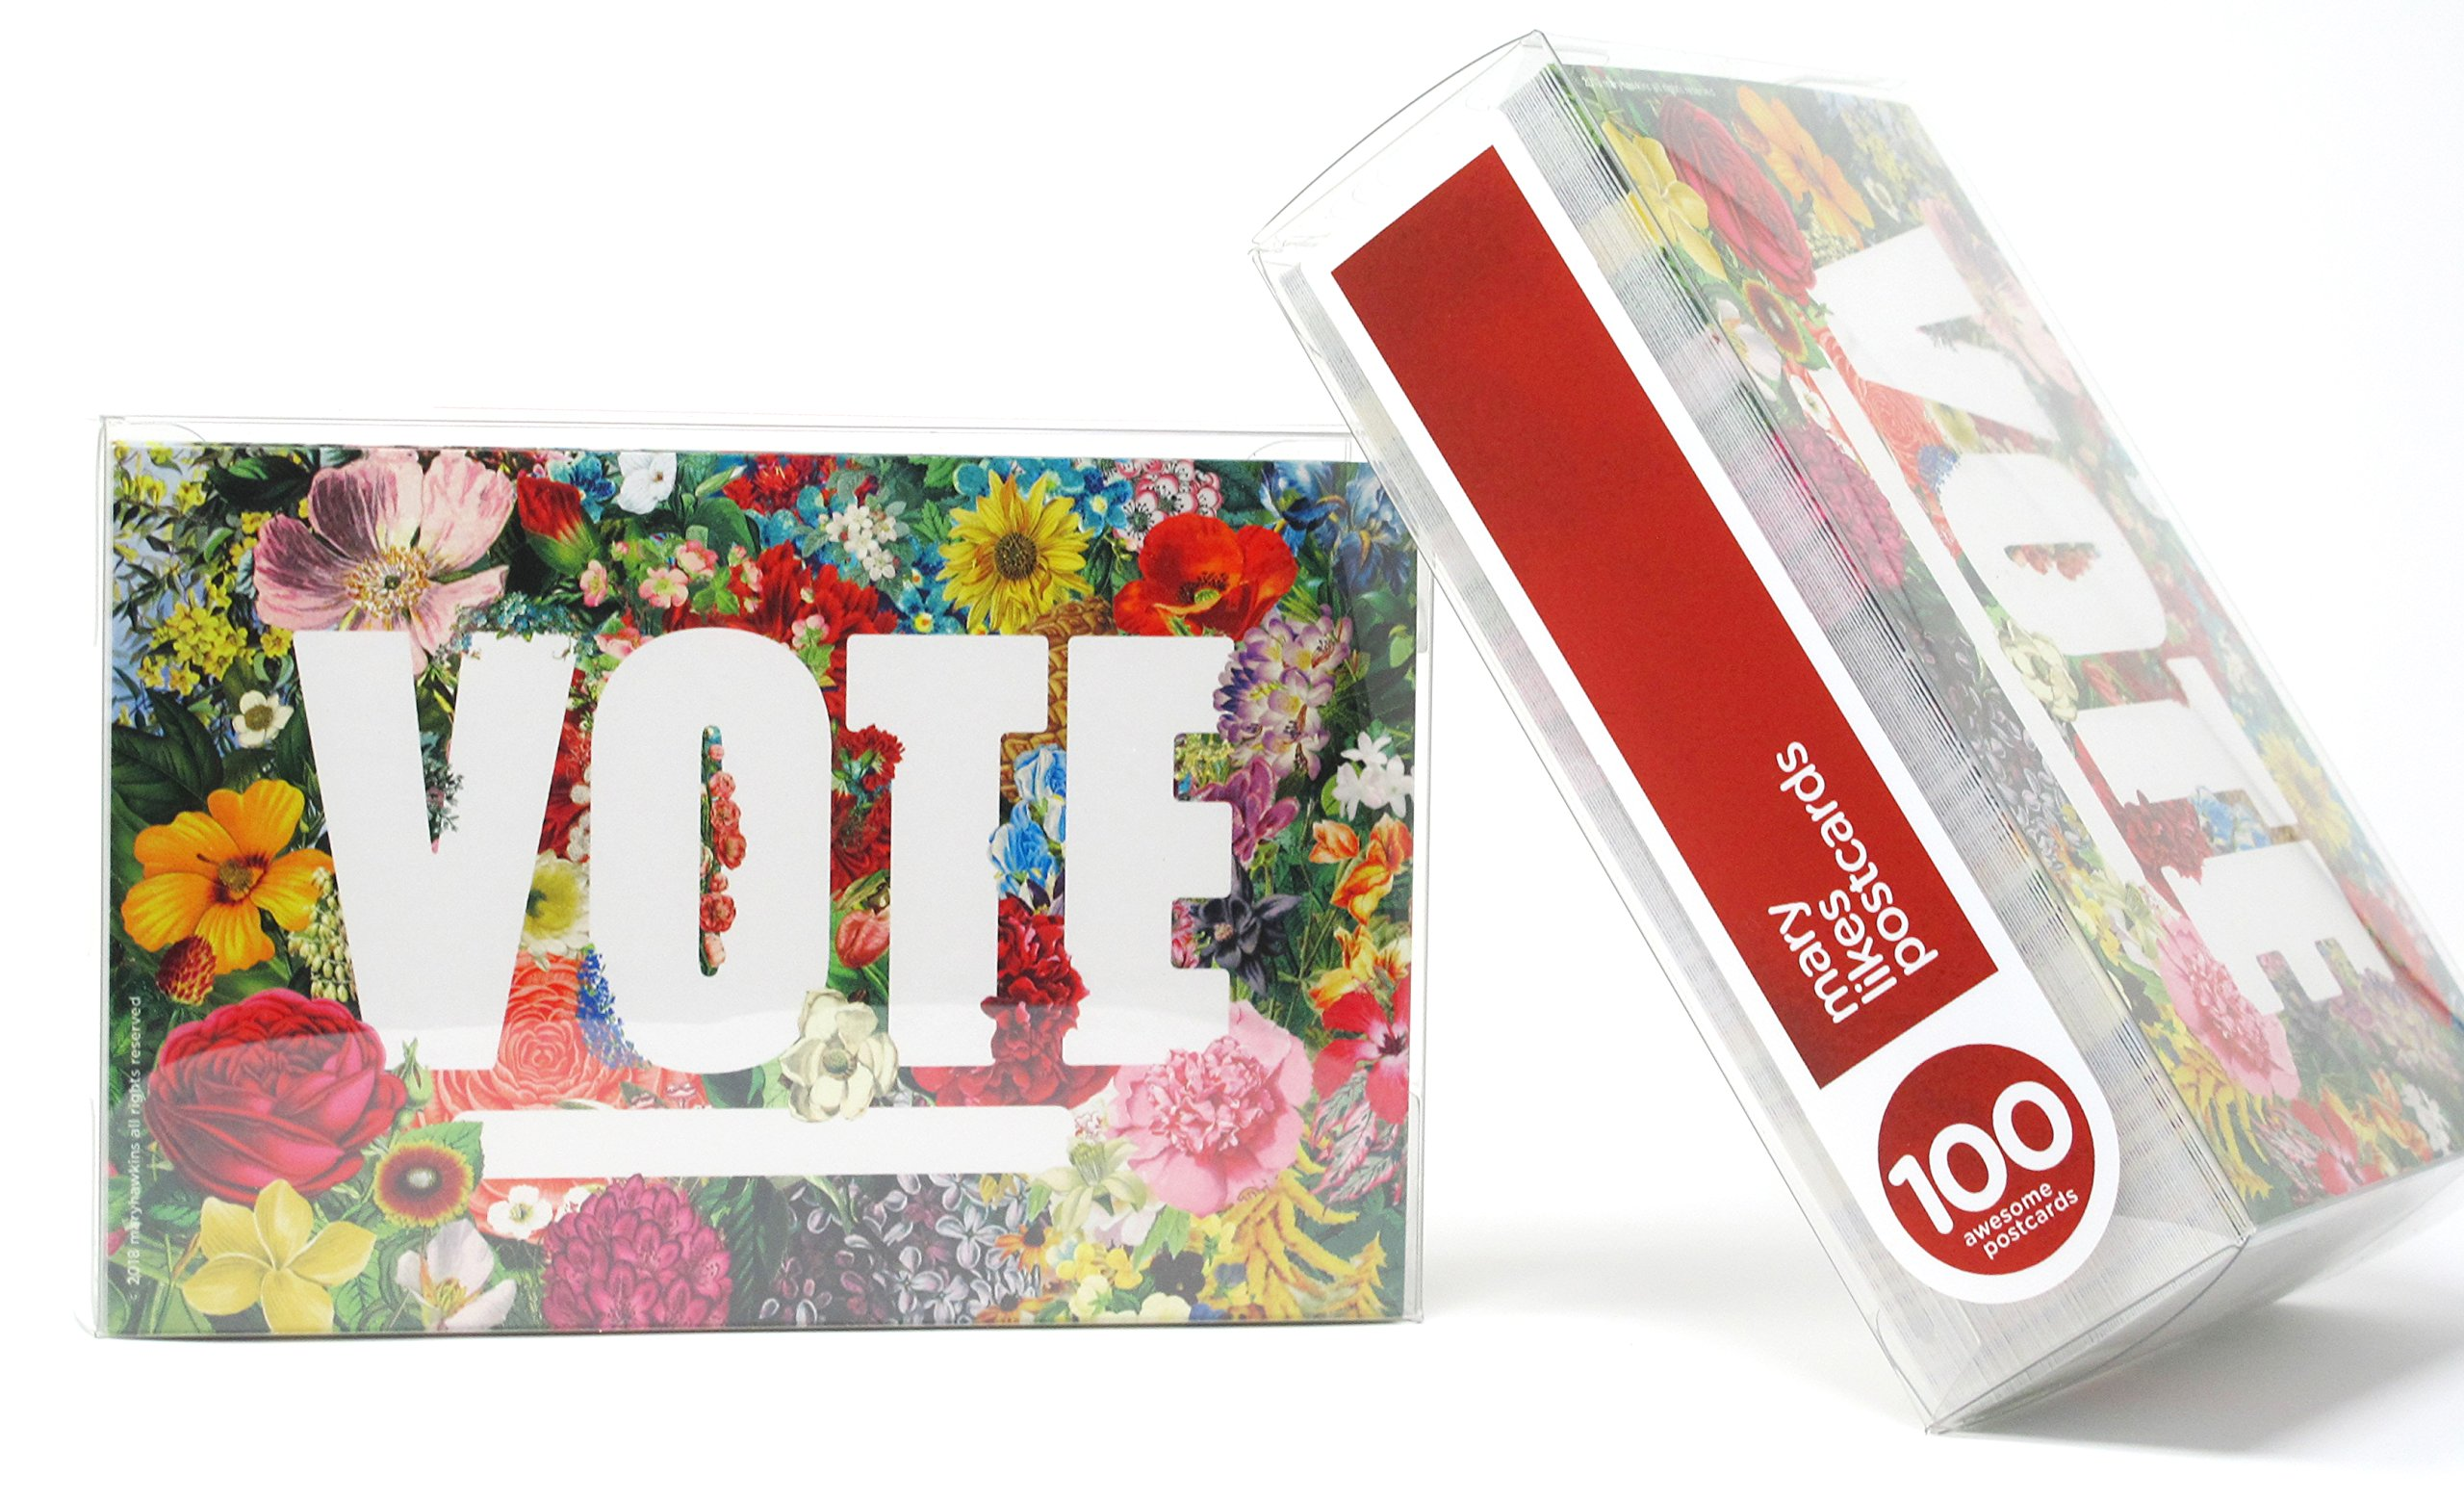 State Flowers''Vote'' Postcards. Perfect for Writing to Your Representatives or Get Out the Vote Campaigns like Postcards to Voters (100) by Mary Likes Postcards